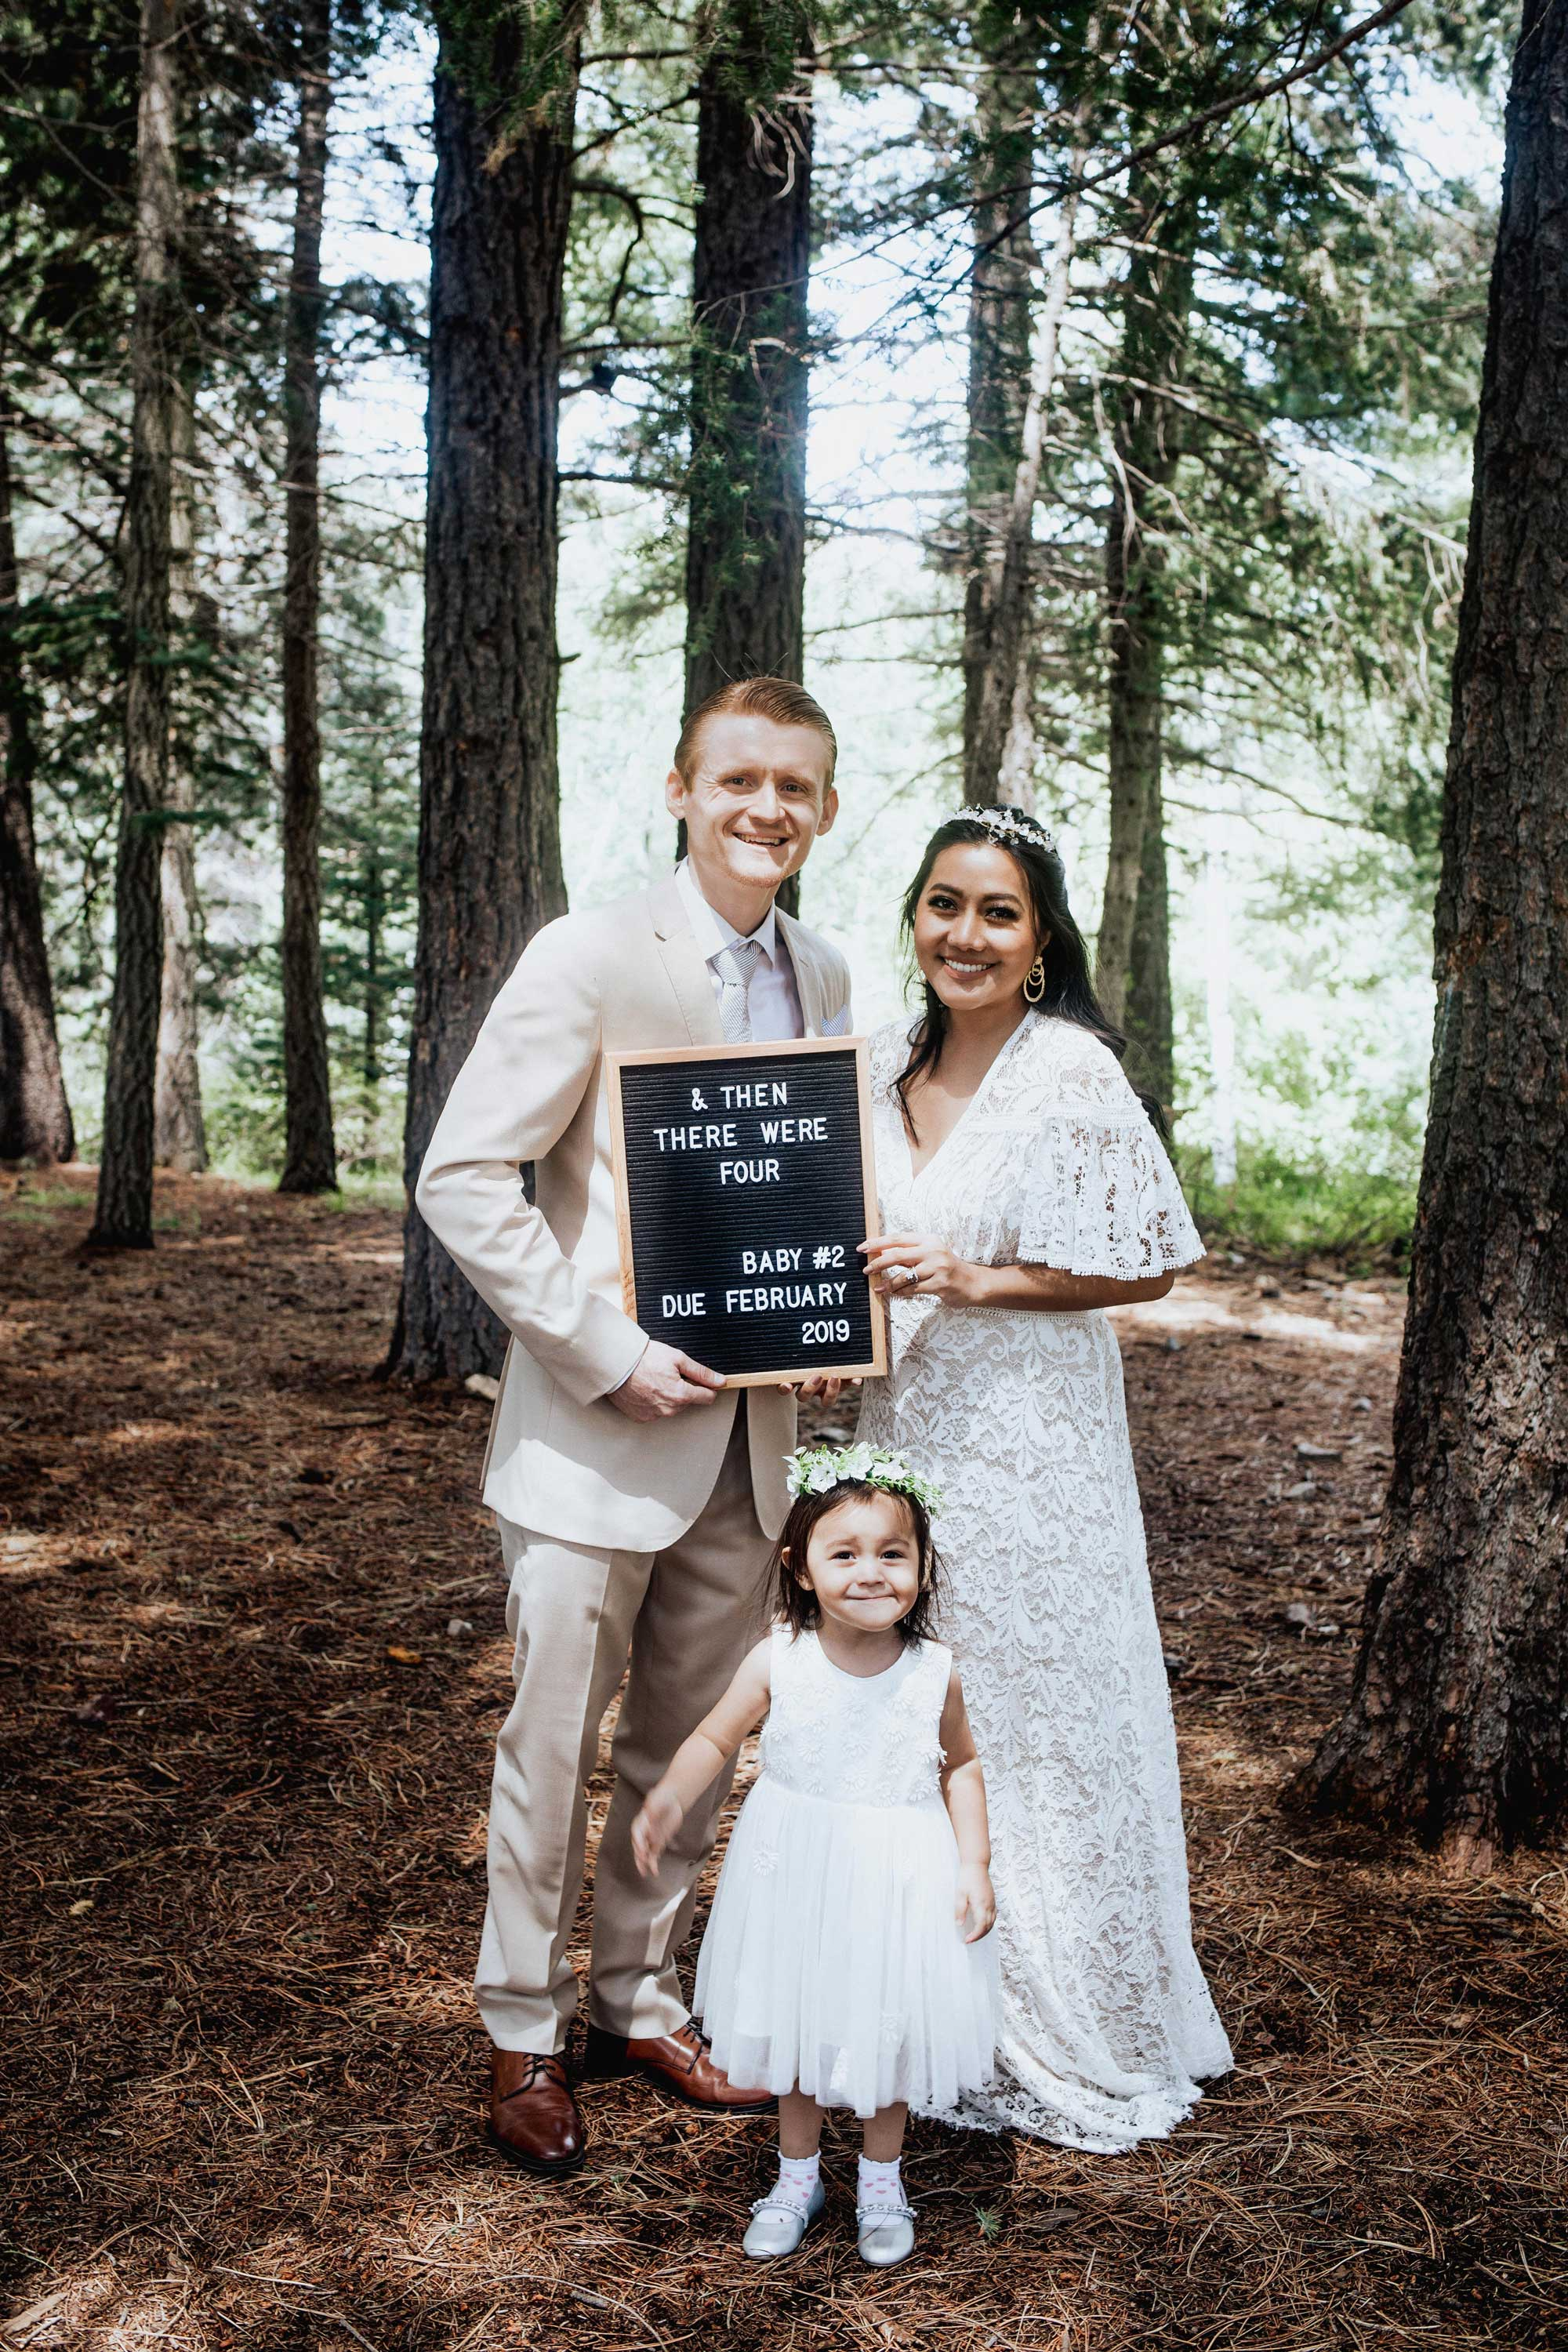 Pregnancy Announcement Baby Number 2_TheVibesCloset_Molly Larsen_Style Blogger_mom Blogger_Beauty Blogger_family picture_1